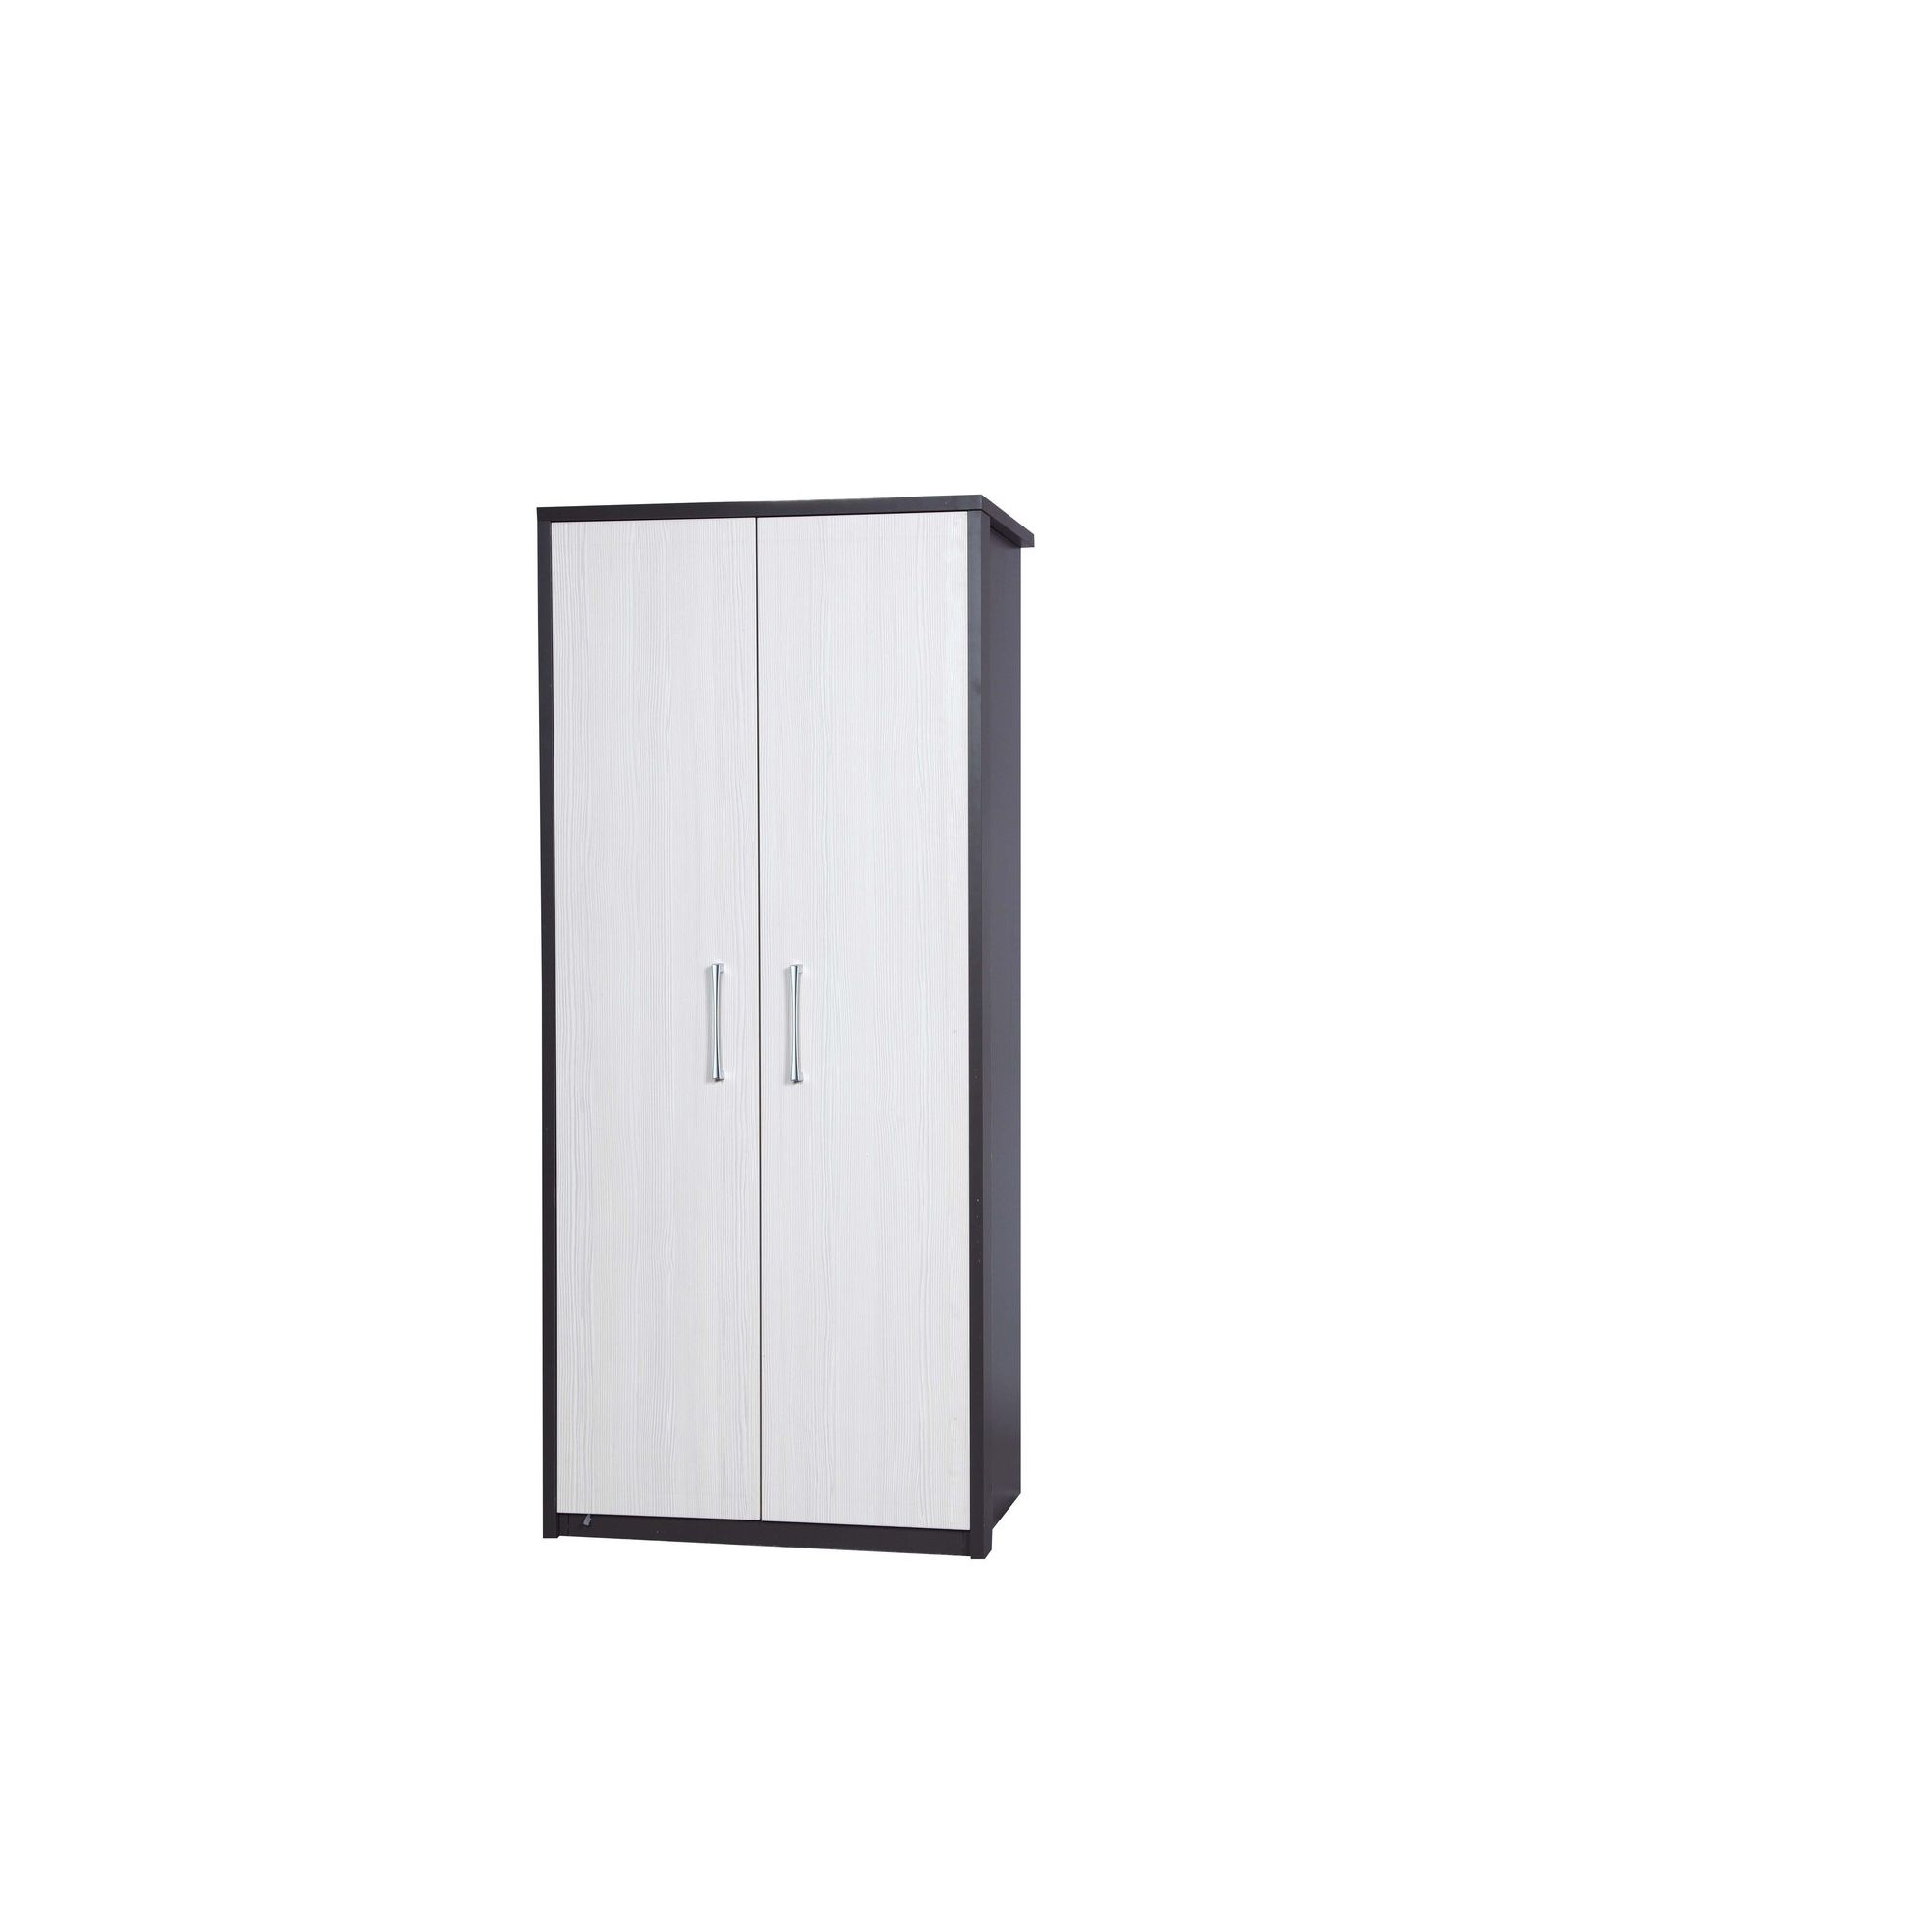 Alto Furniture Avola Double Wardrobe - Grey Carcass With White Avola at Tesco Direct